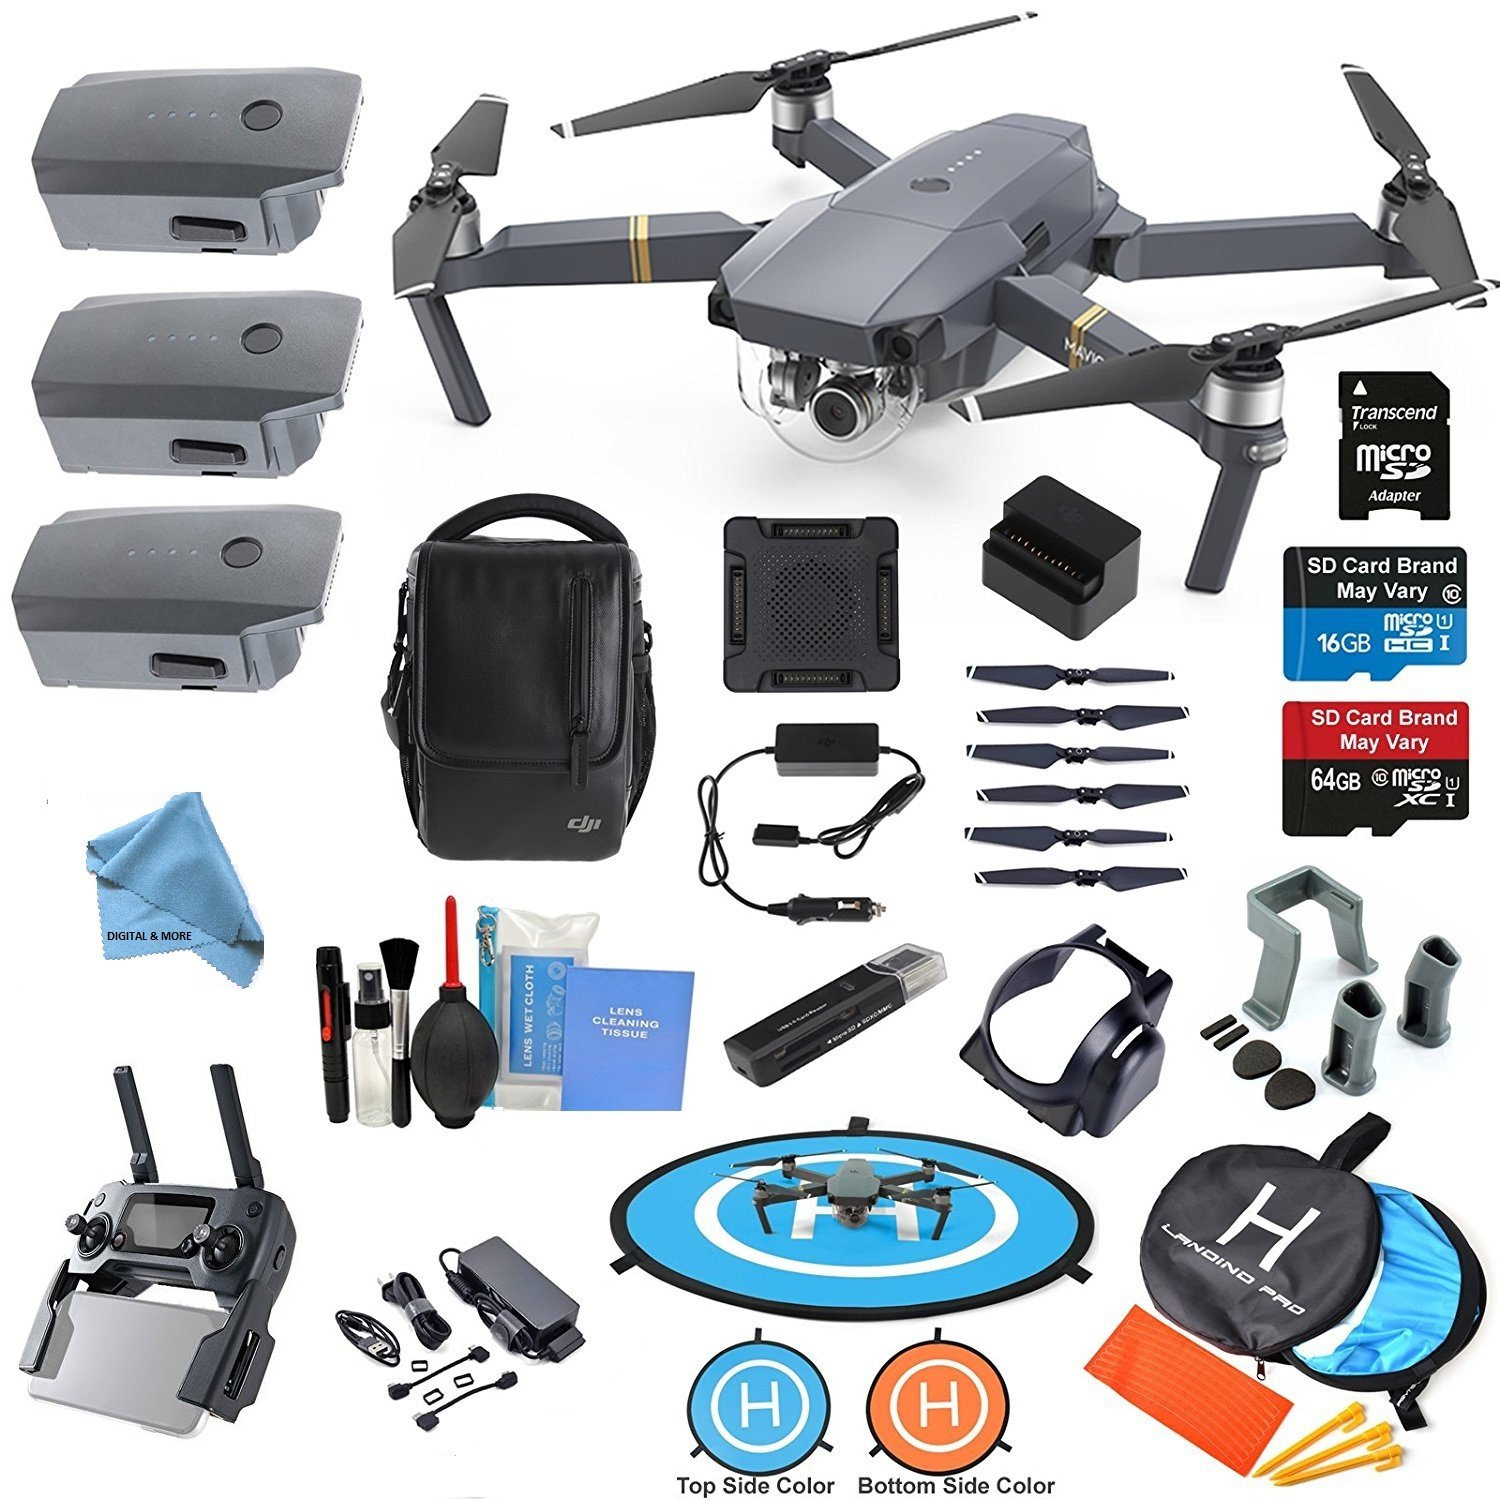 DJI Mavic PRO Drone Quadcopter Flymore ALL YOU NEED & MORE Combo w/ 3 Batteries, 4K Professional Camera Gimbal Bundle Kit w/ Amazing Accessories by DigitalandMore